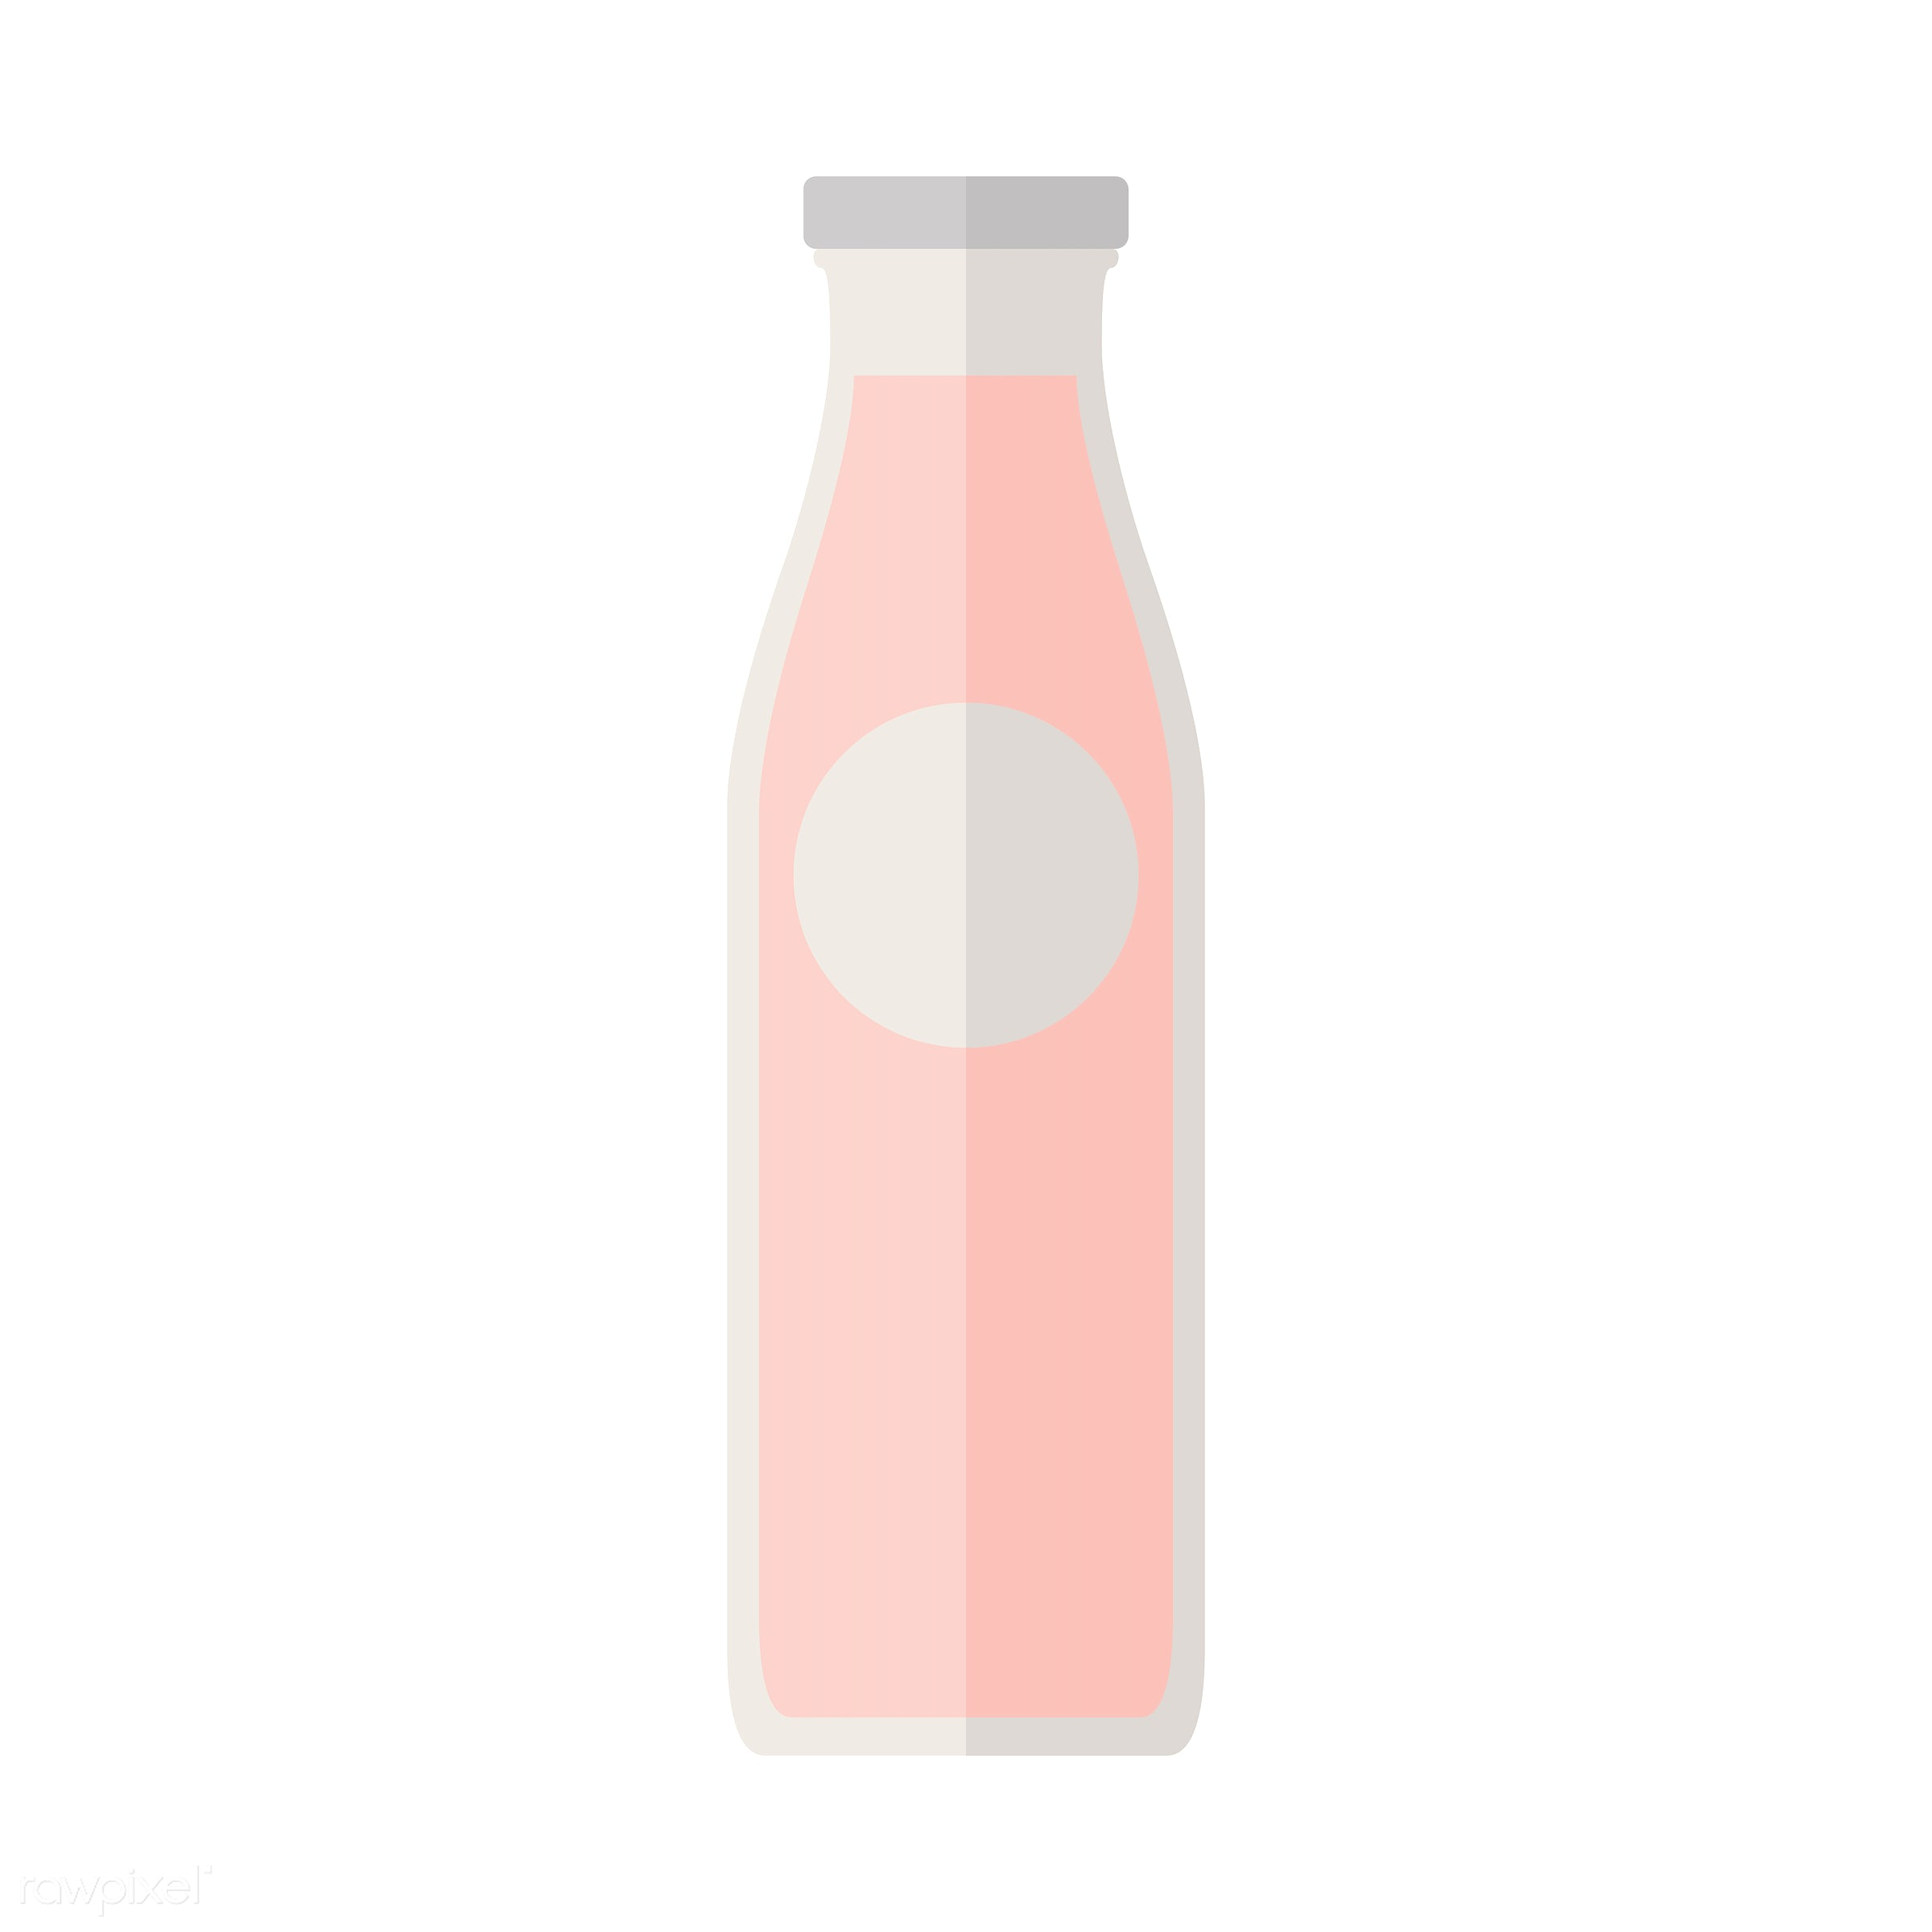 vector, graphic, illustration, icon, symbol, colorful, cute, drink, beverage, water, pink, lemonade